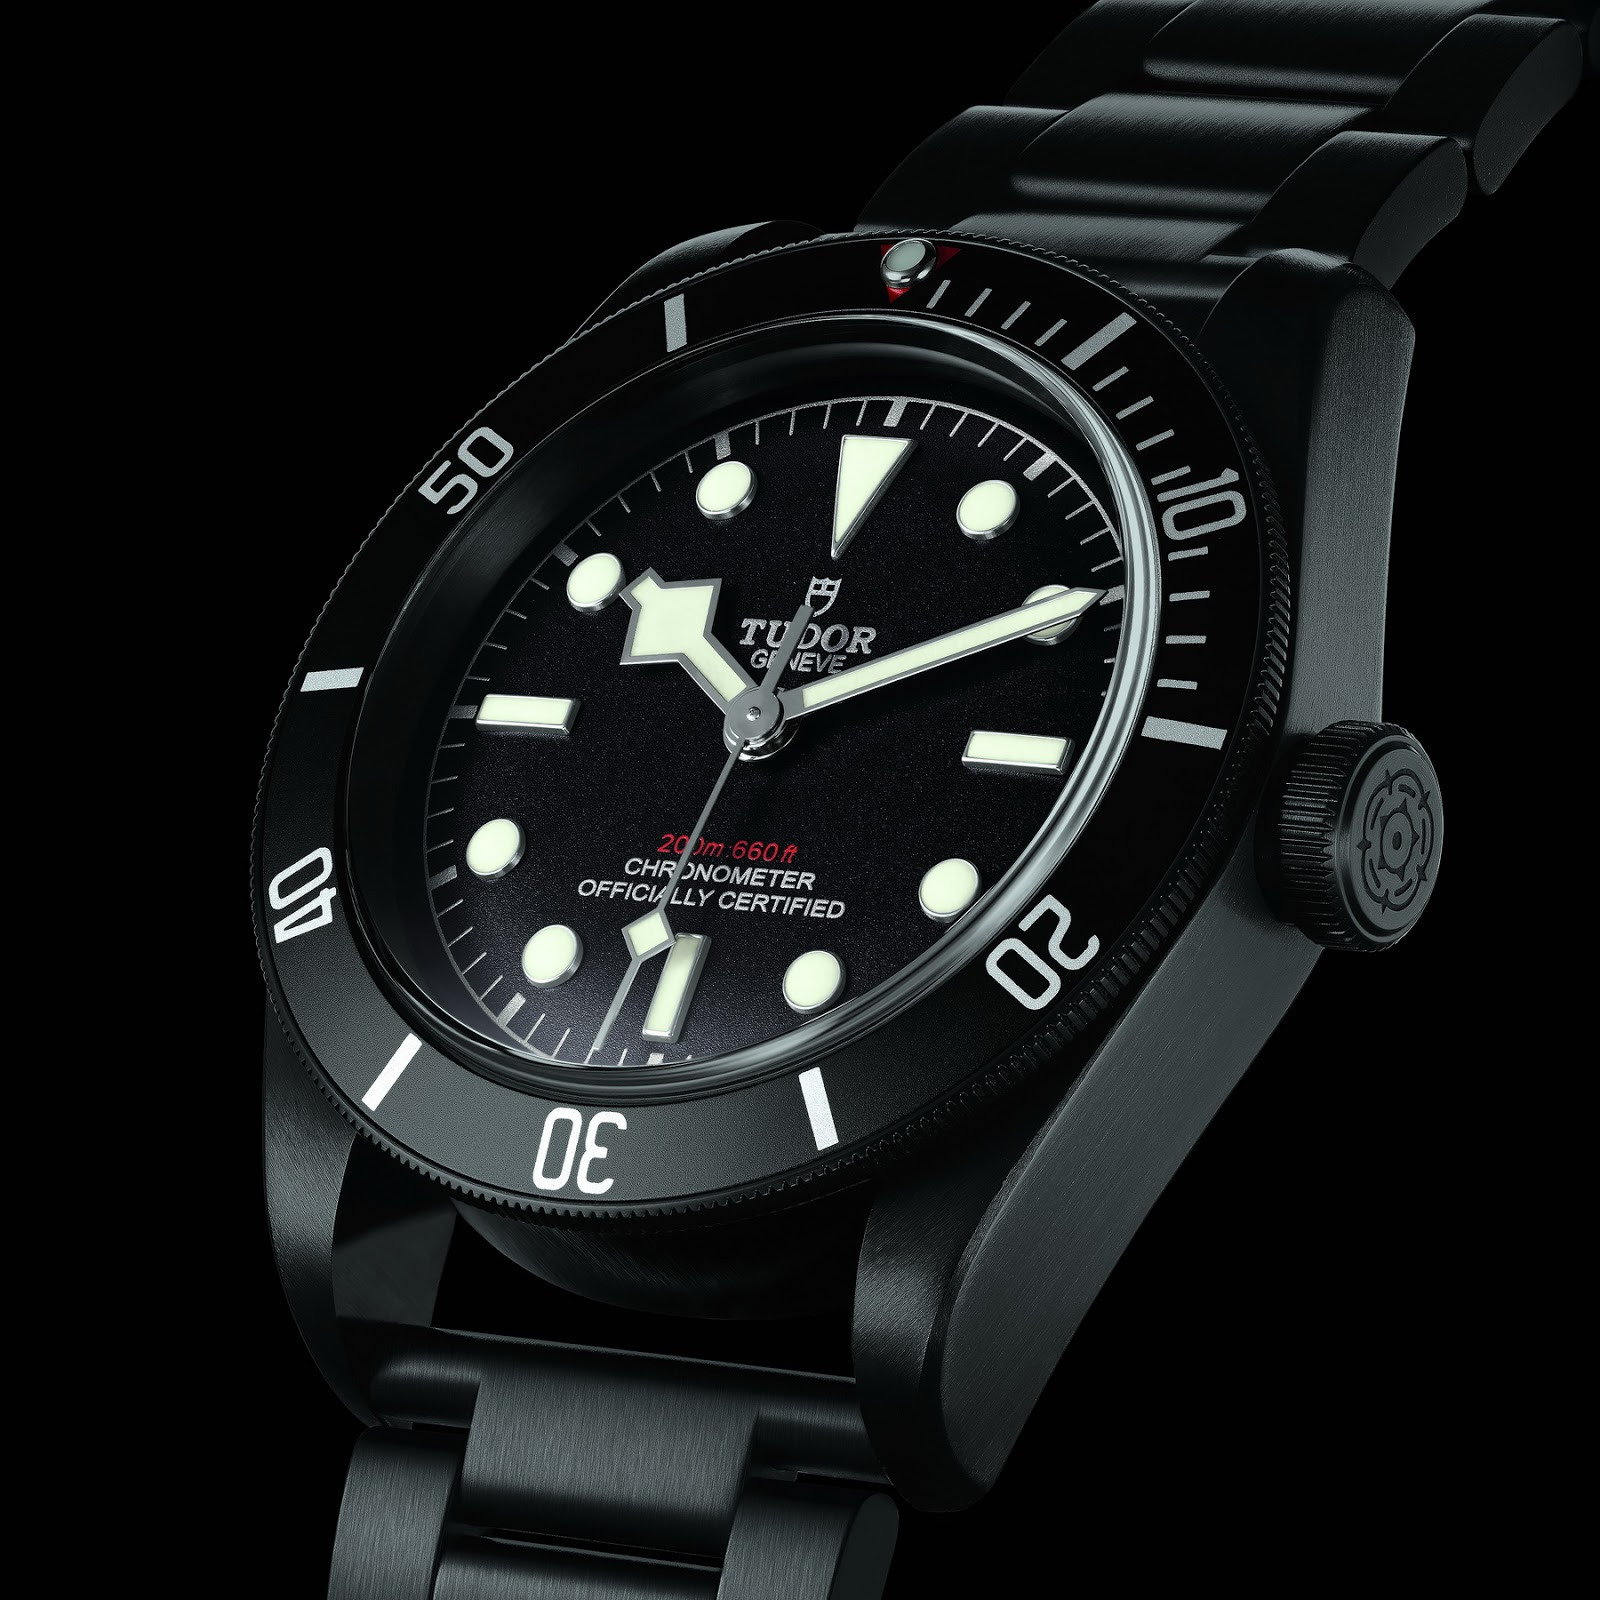 helberg oceanictime watches by